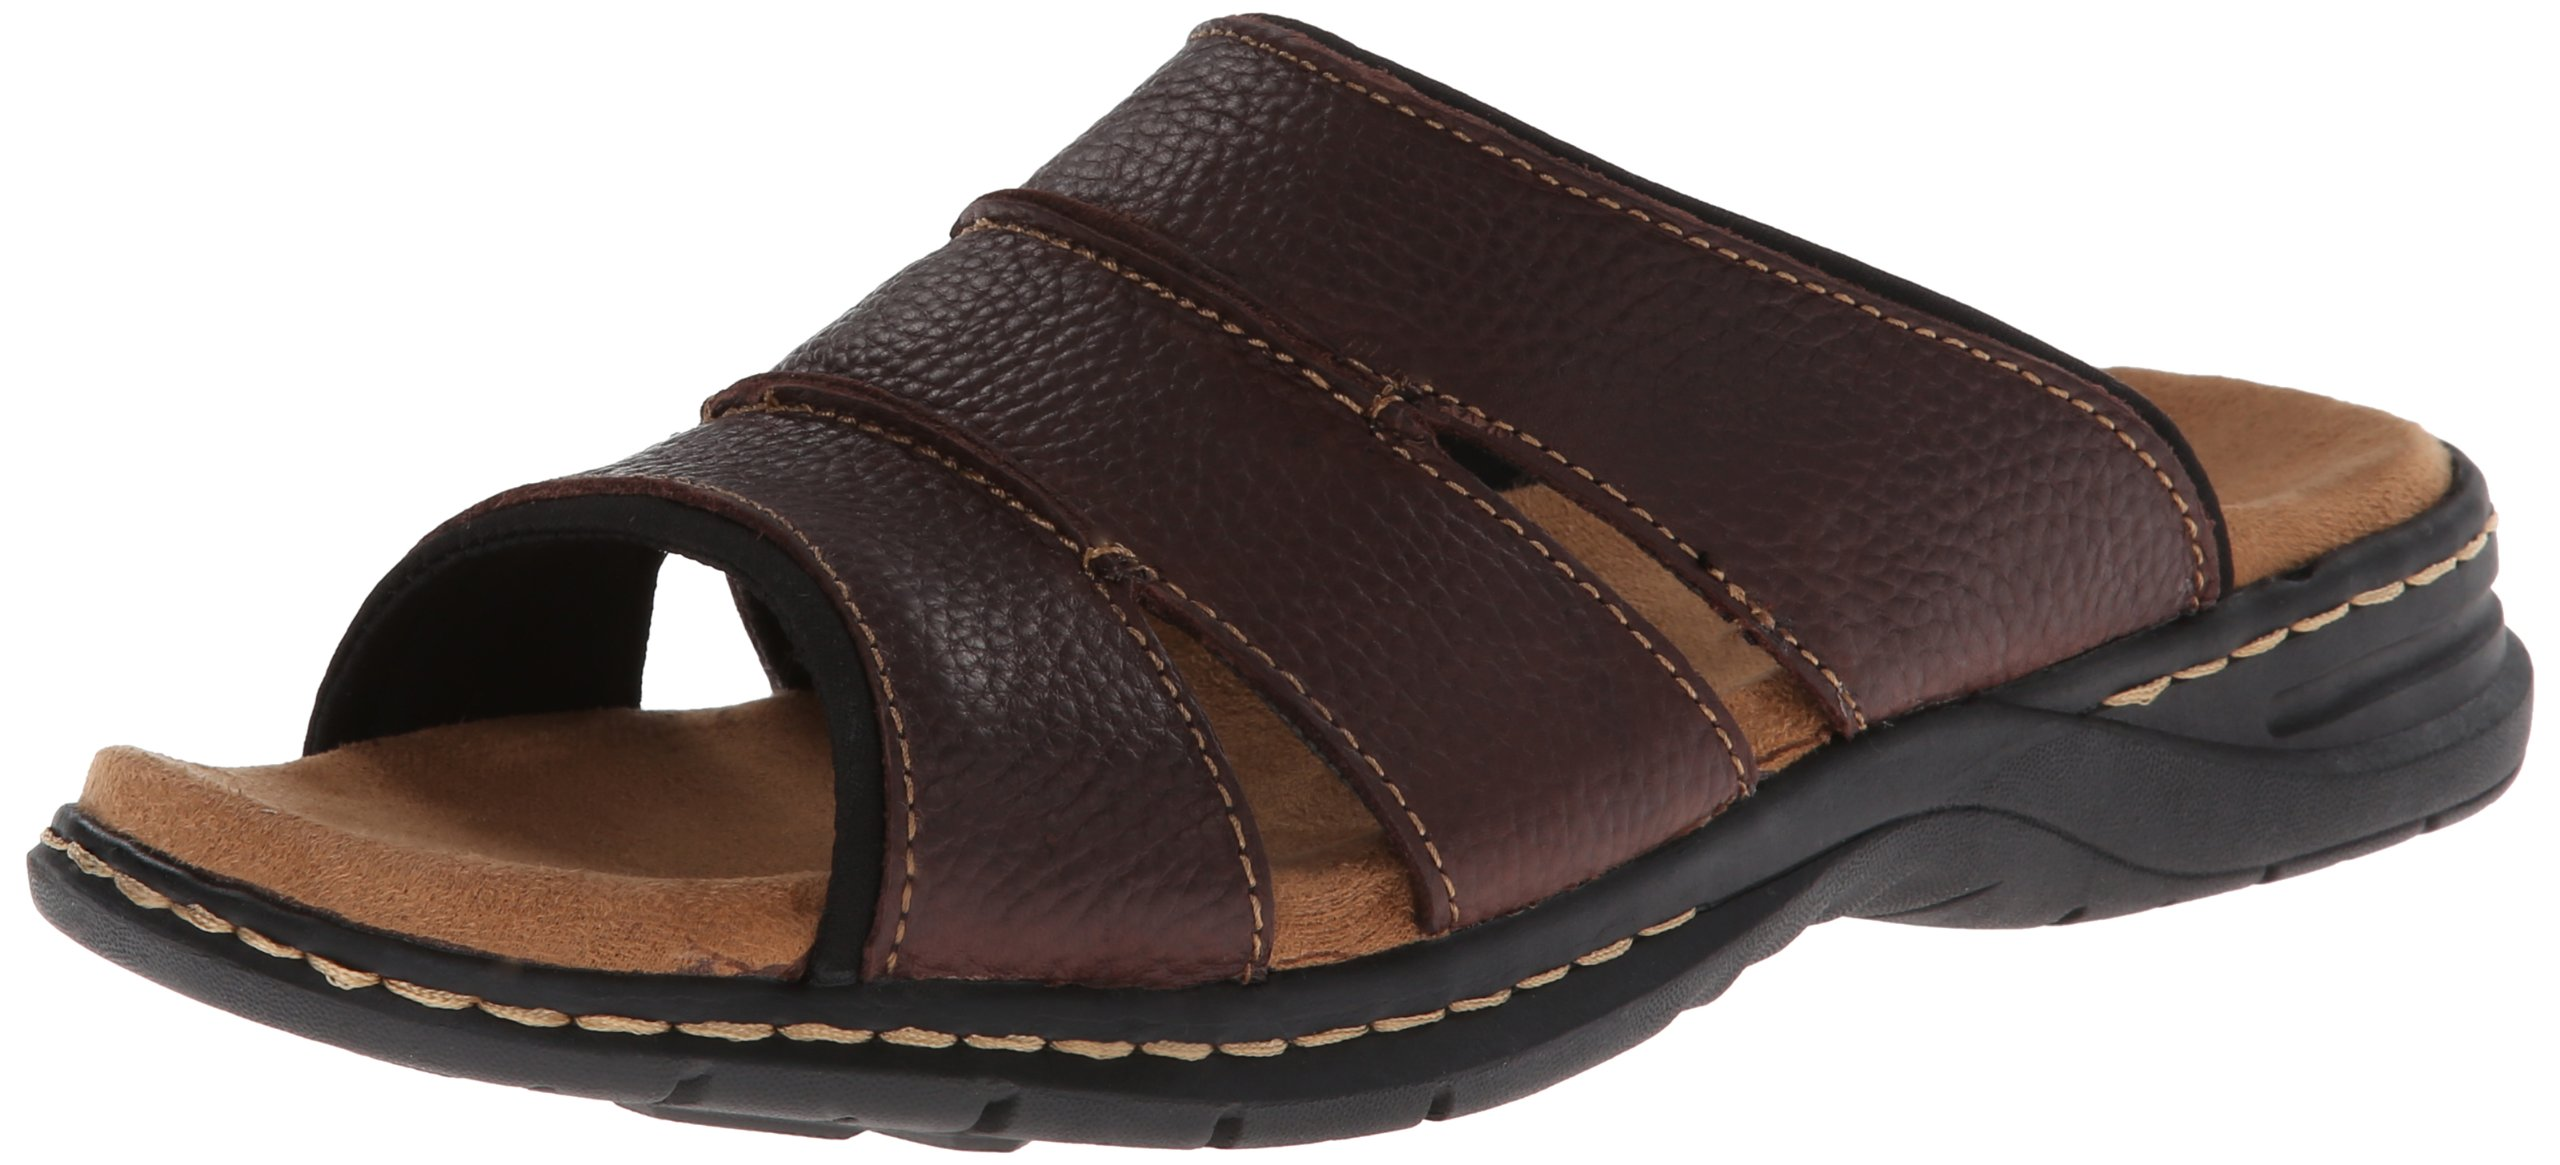 Dr. Scholl's Men's Gordon Fisherman Sandal, Brown, 11 M US